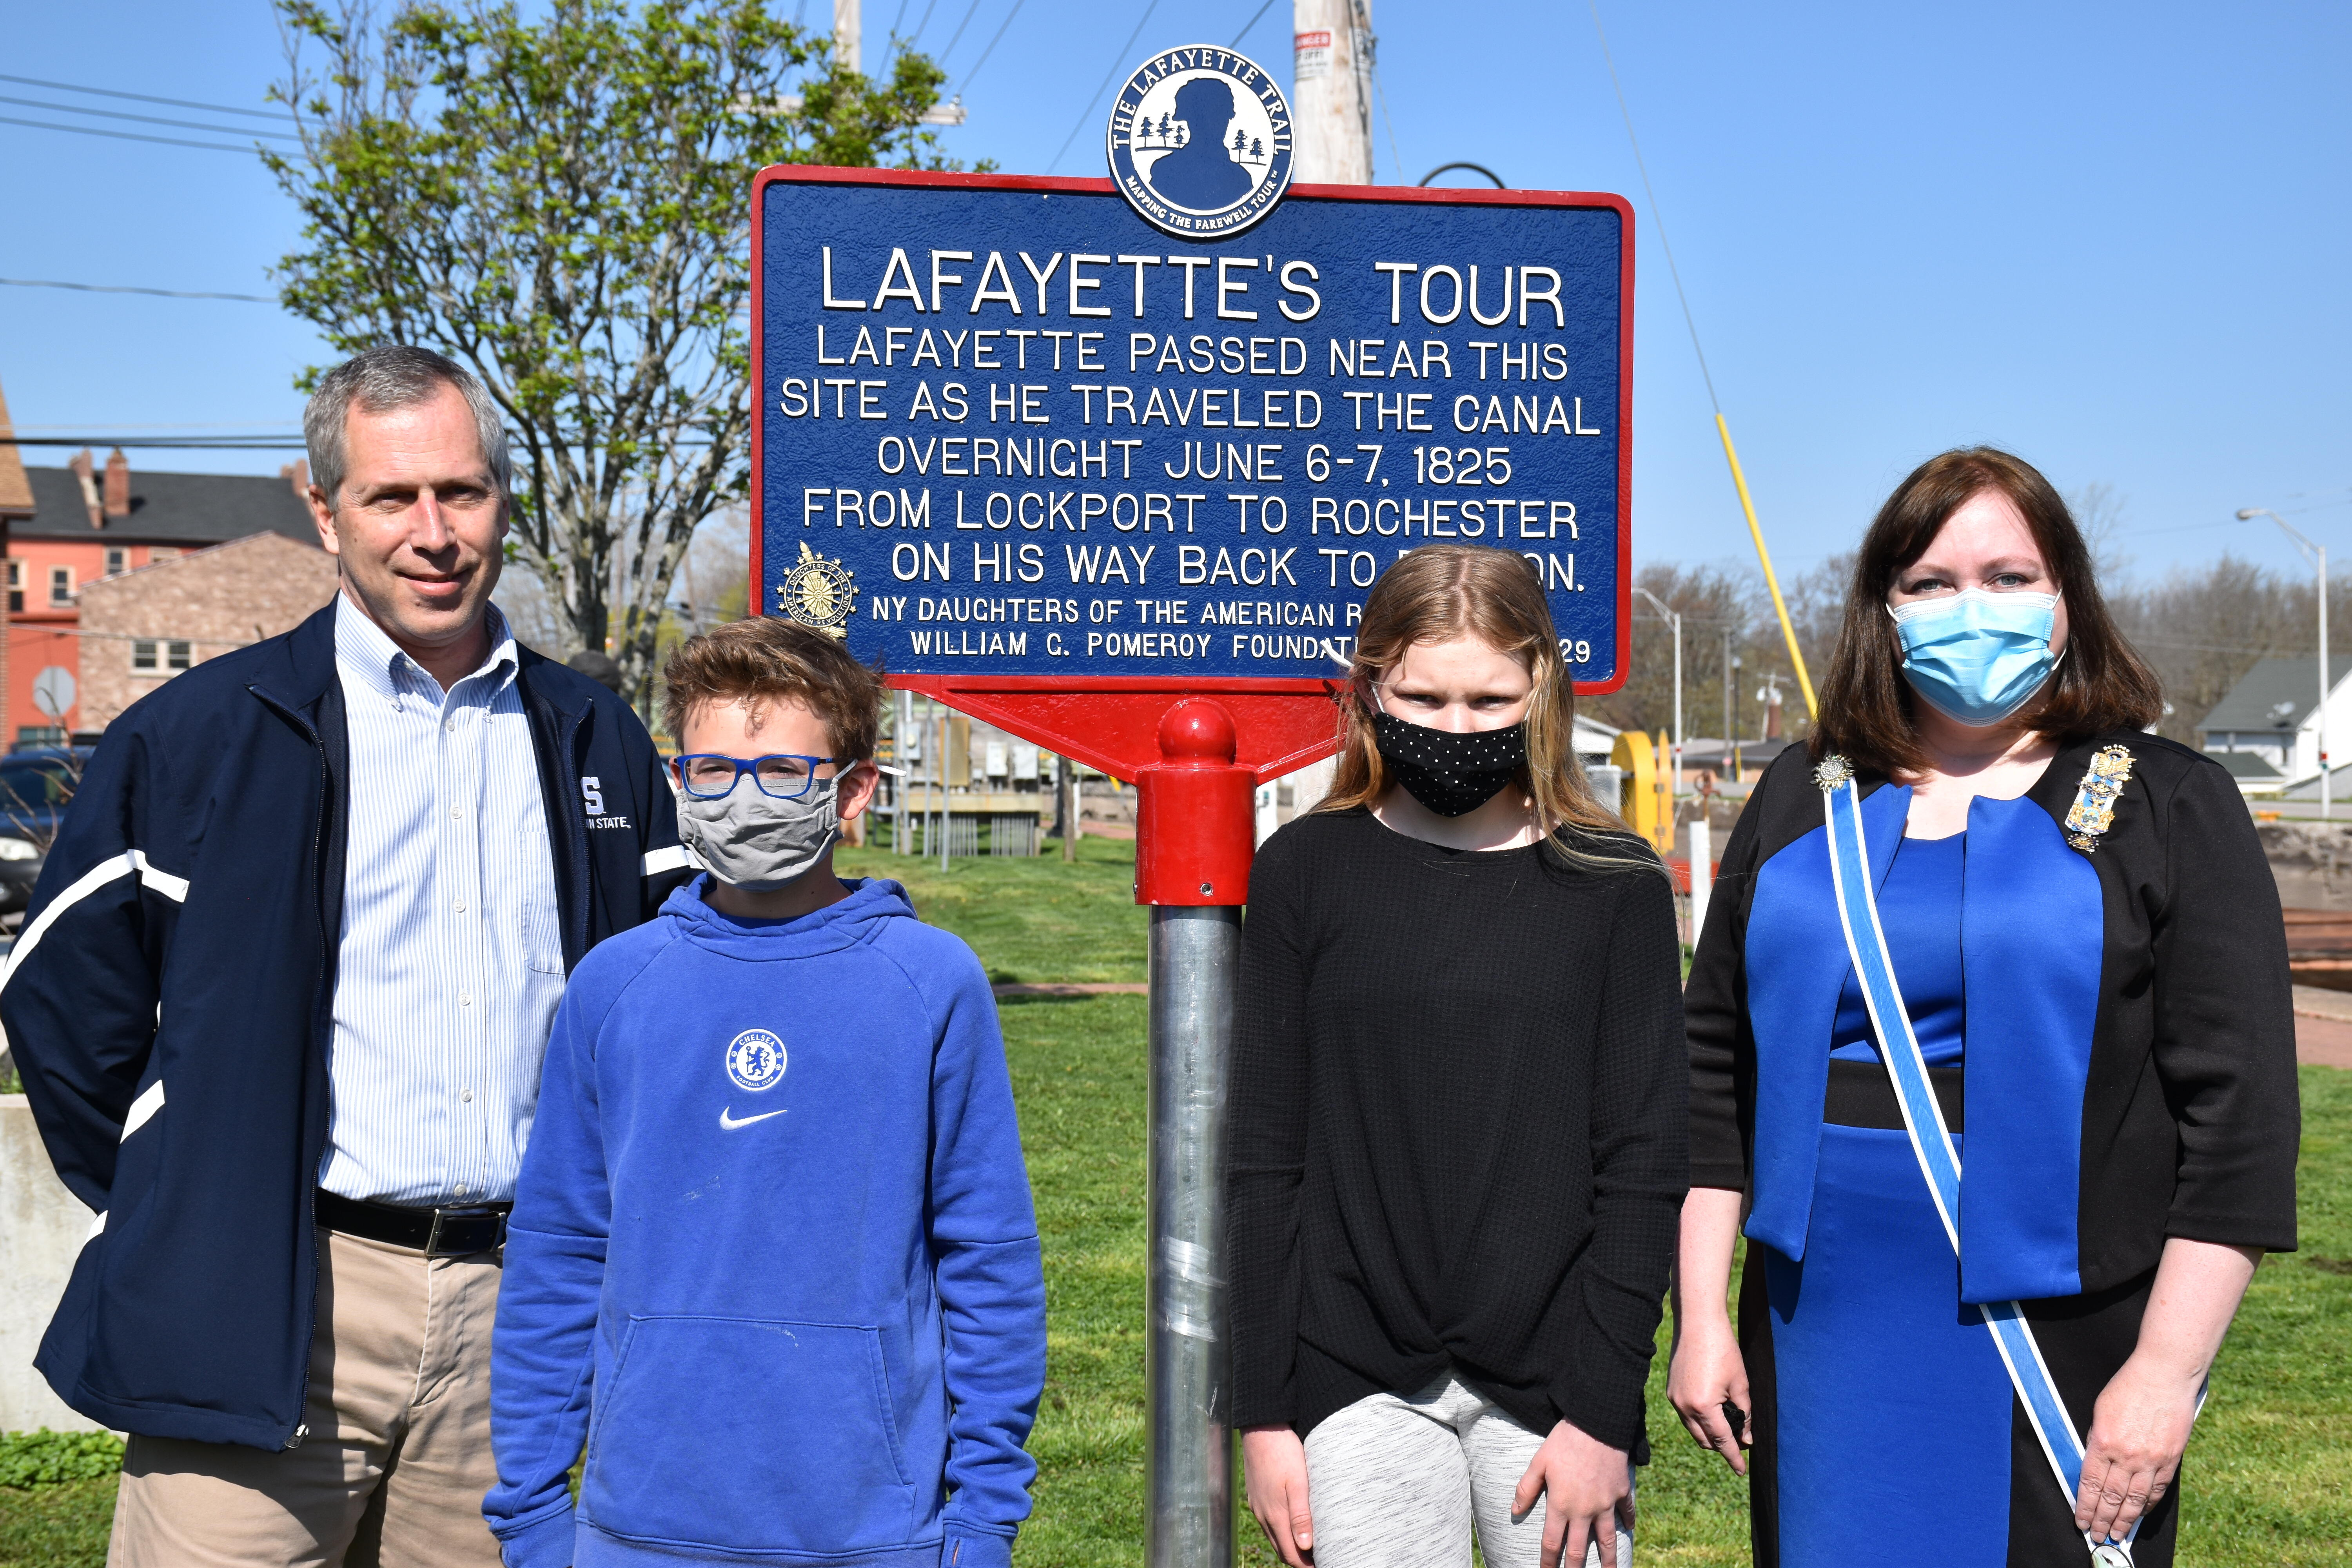 From left to right: Tim Archer, Justin Kania, Kaitlin Bennett, and DAR Regent Patrice Birner with the historical marker